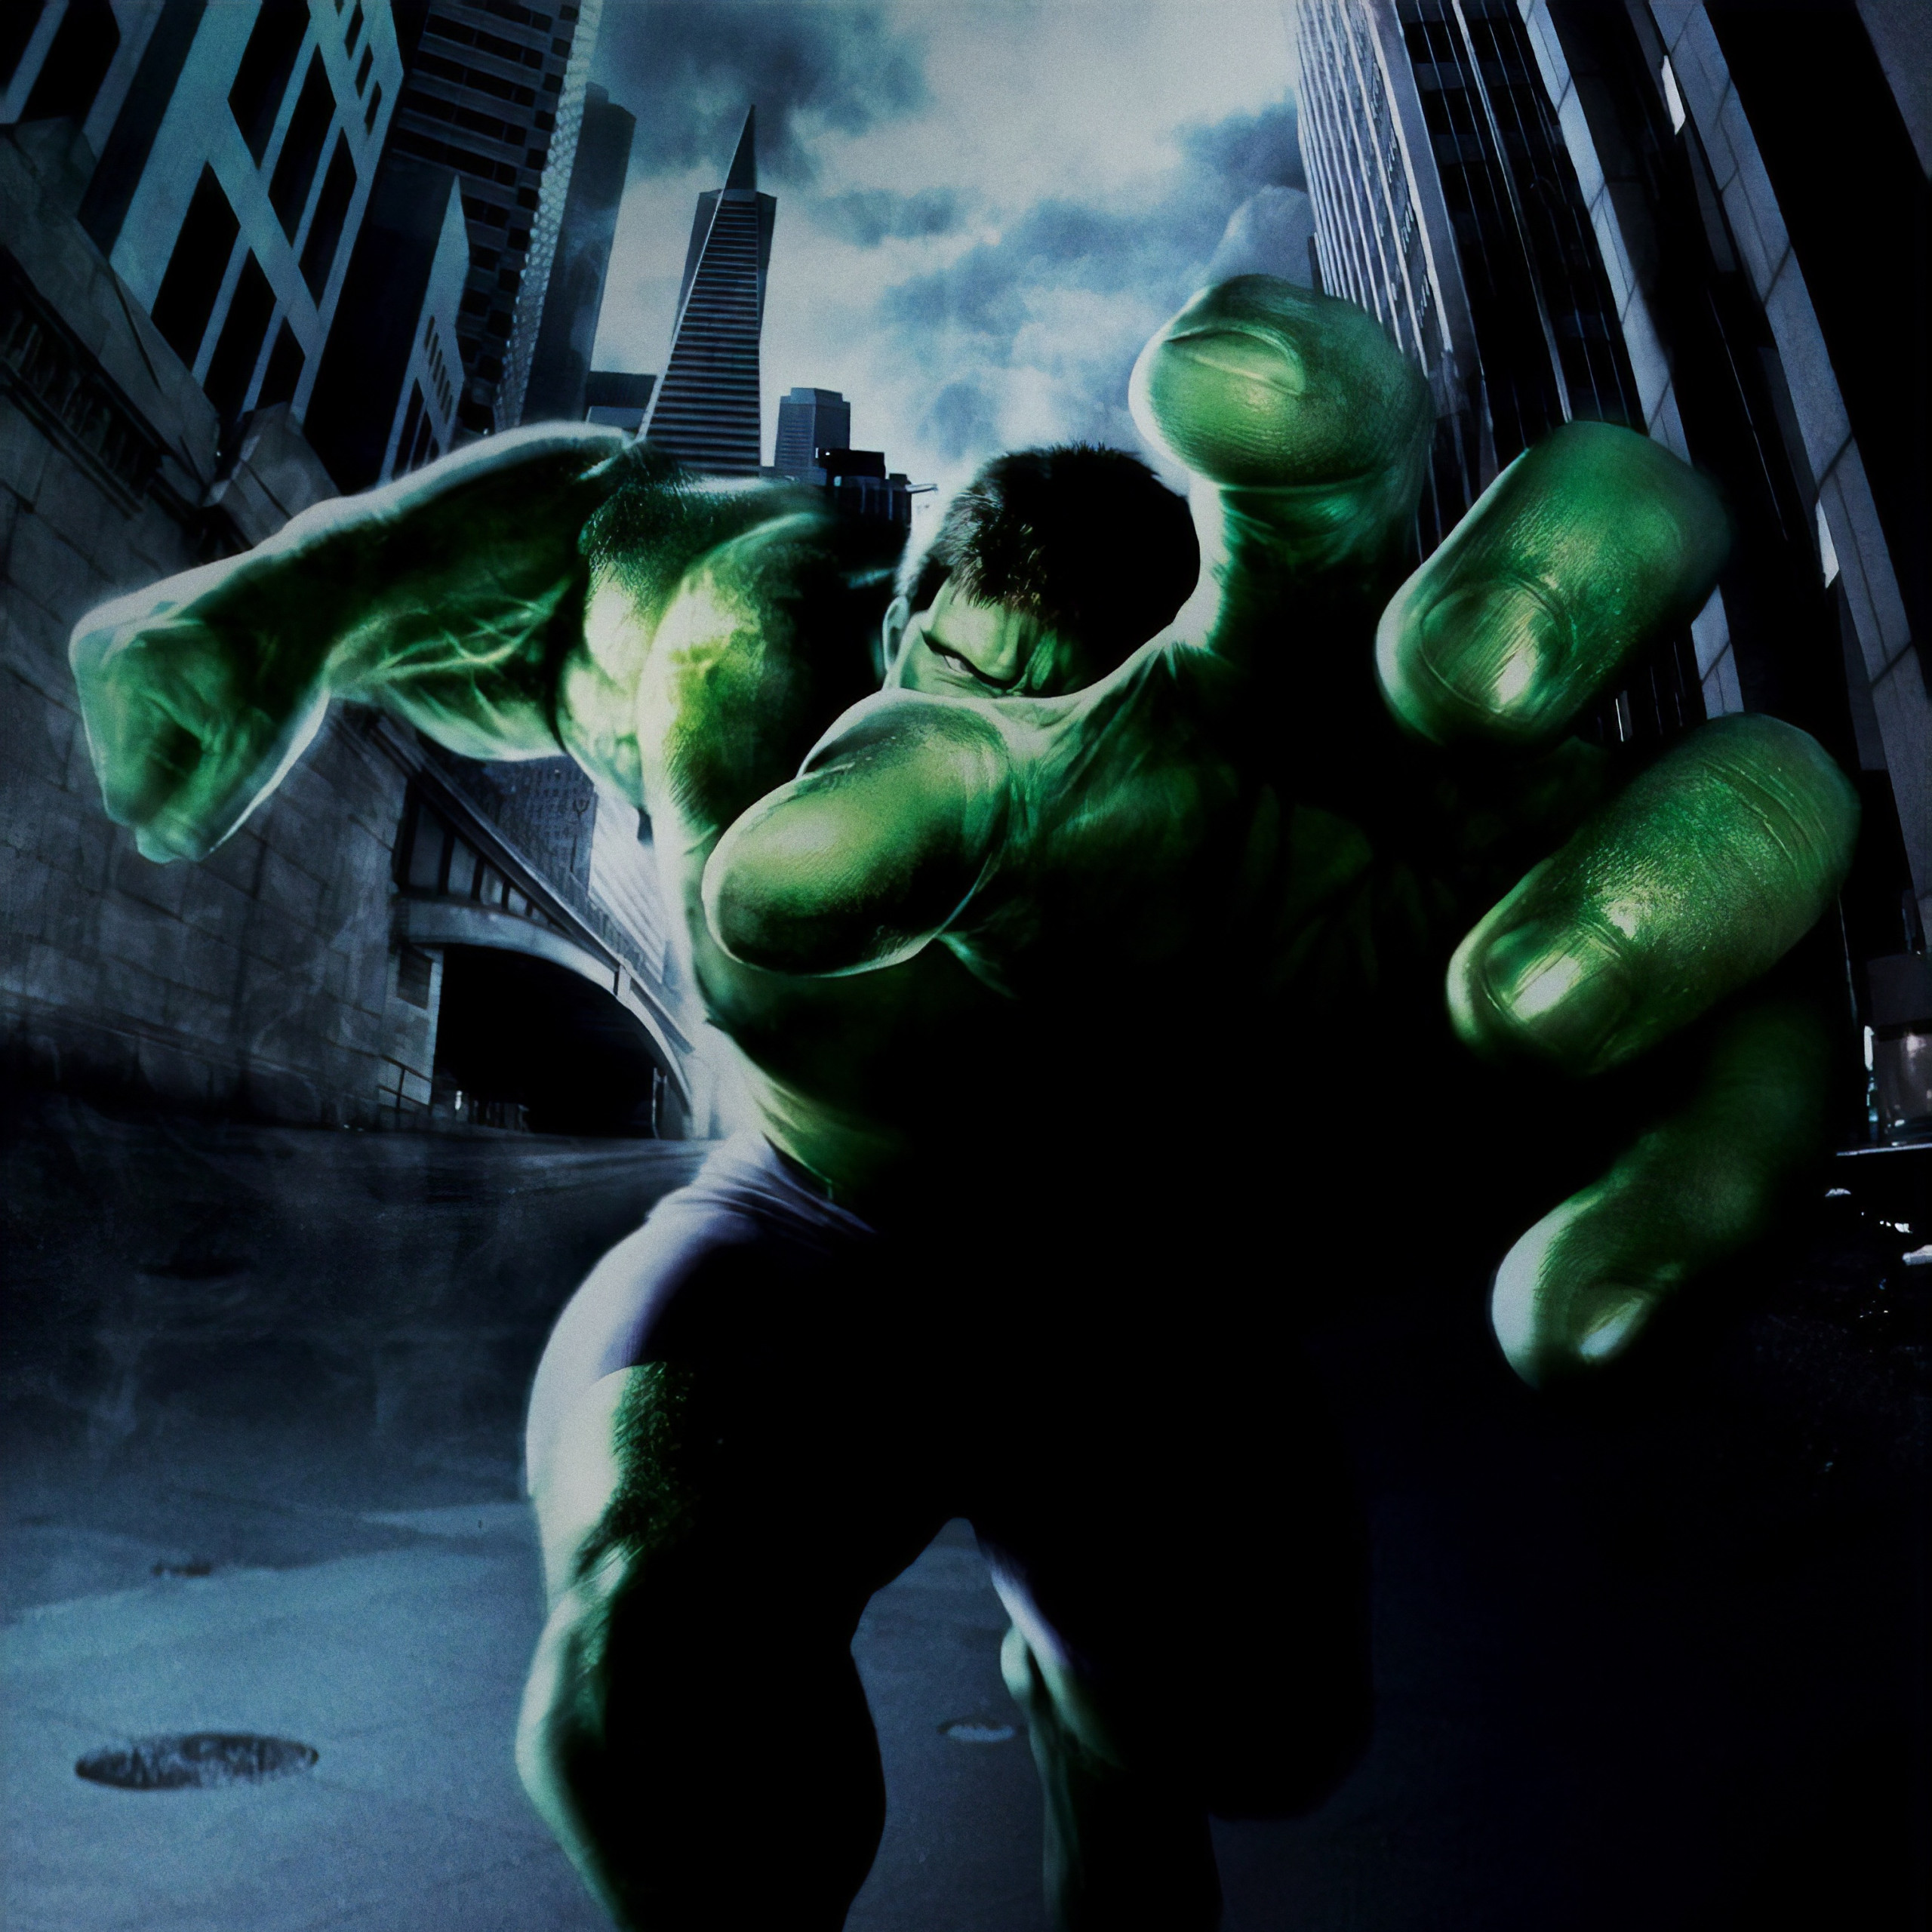 Hulk Hd Wallpapers Download Wallpapers on Jakpost